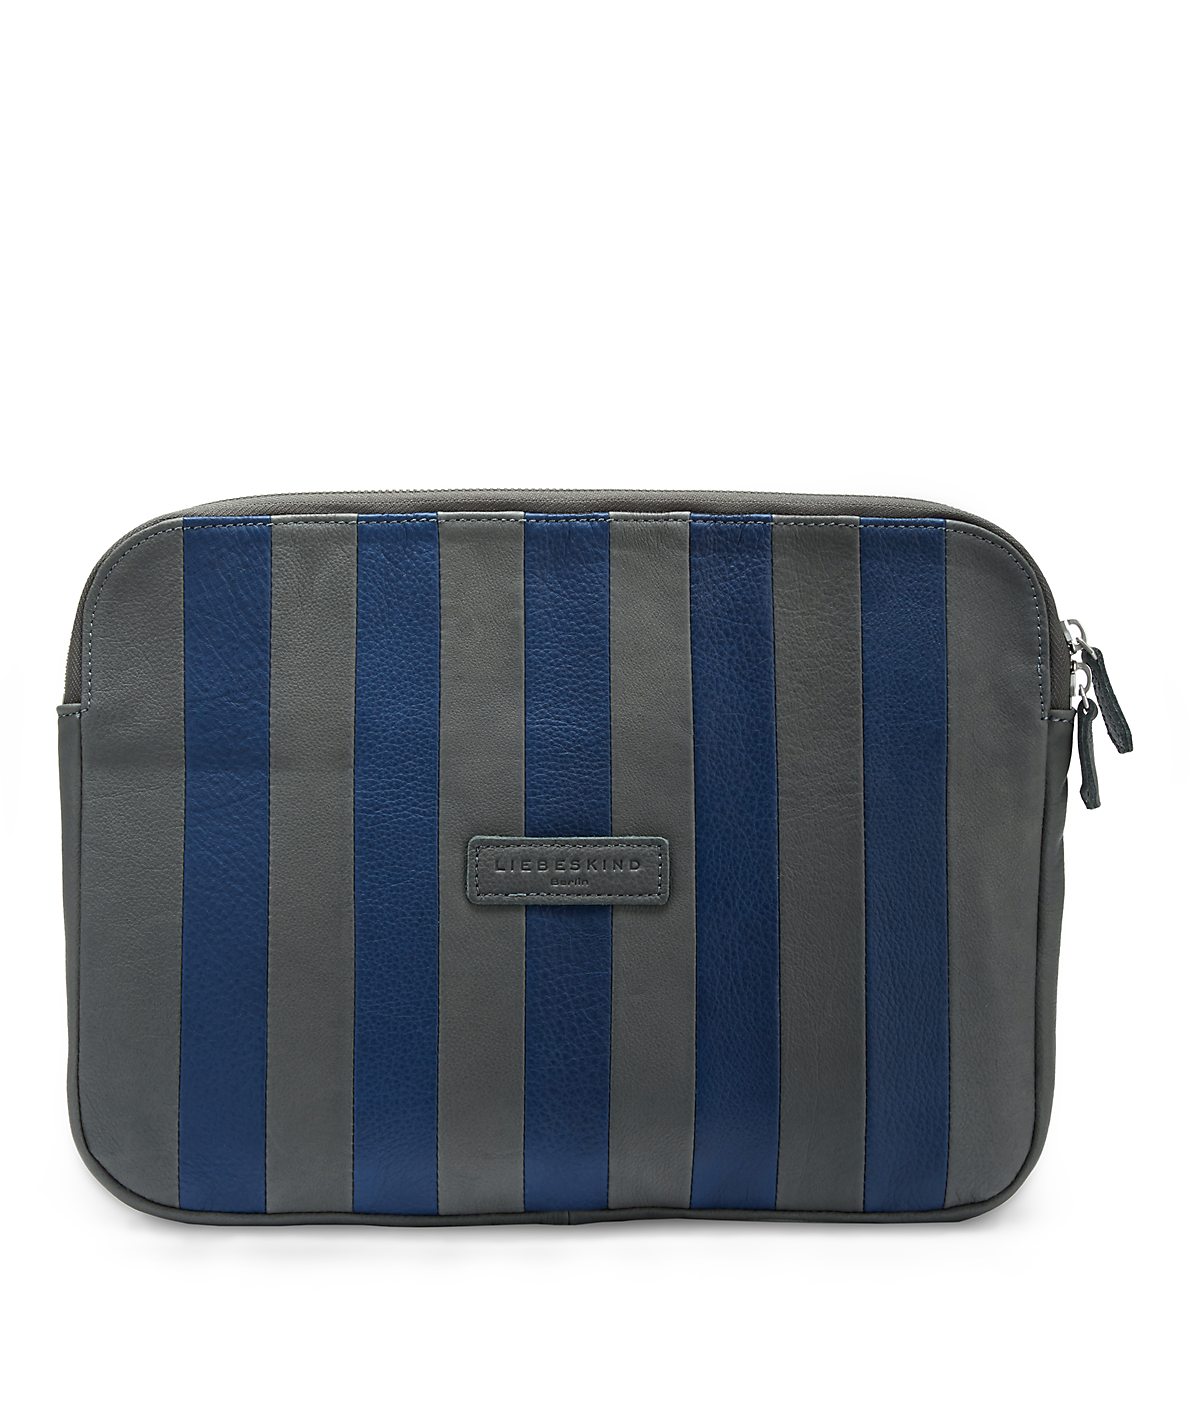 Emelie laptop bag from liebeskind